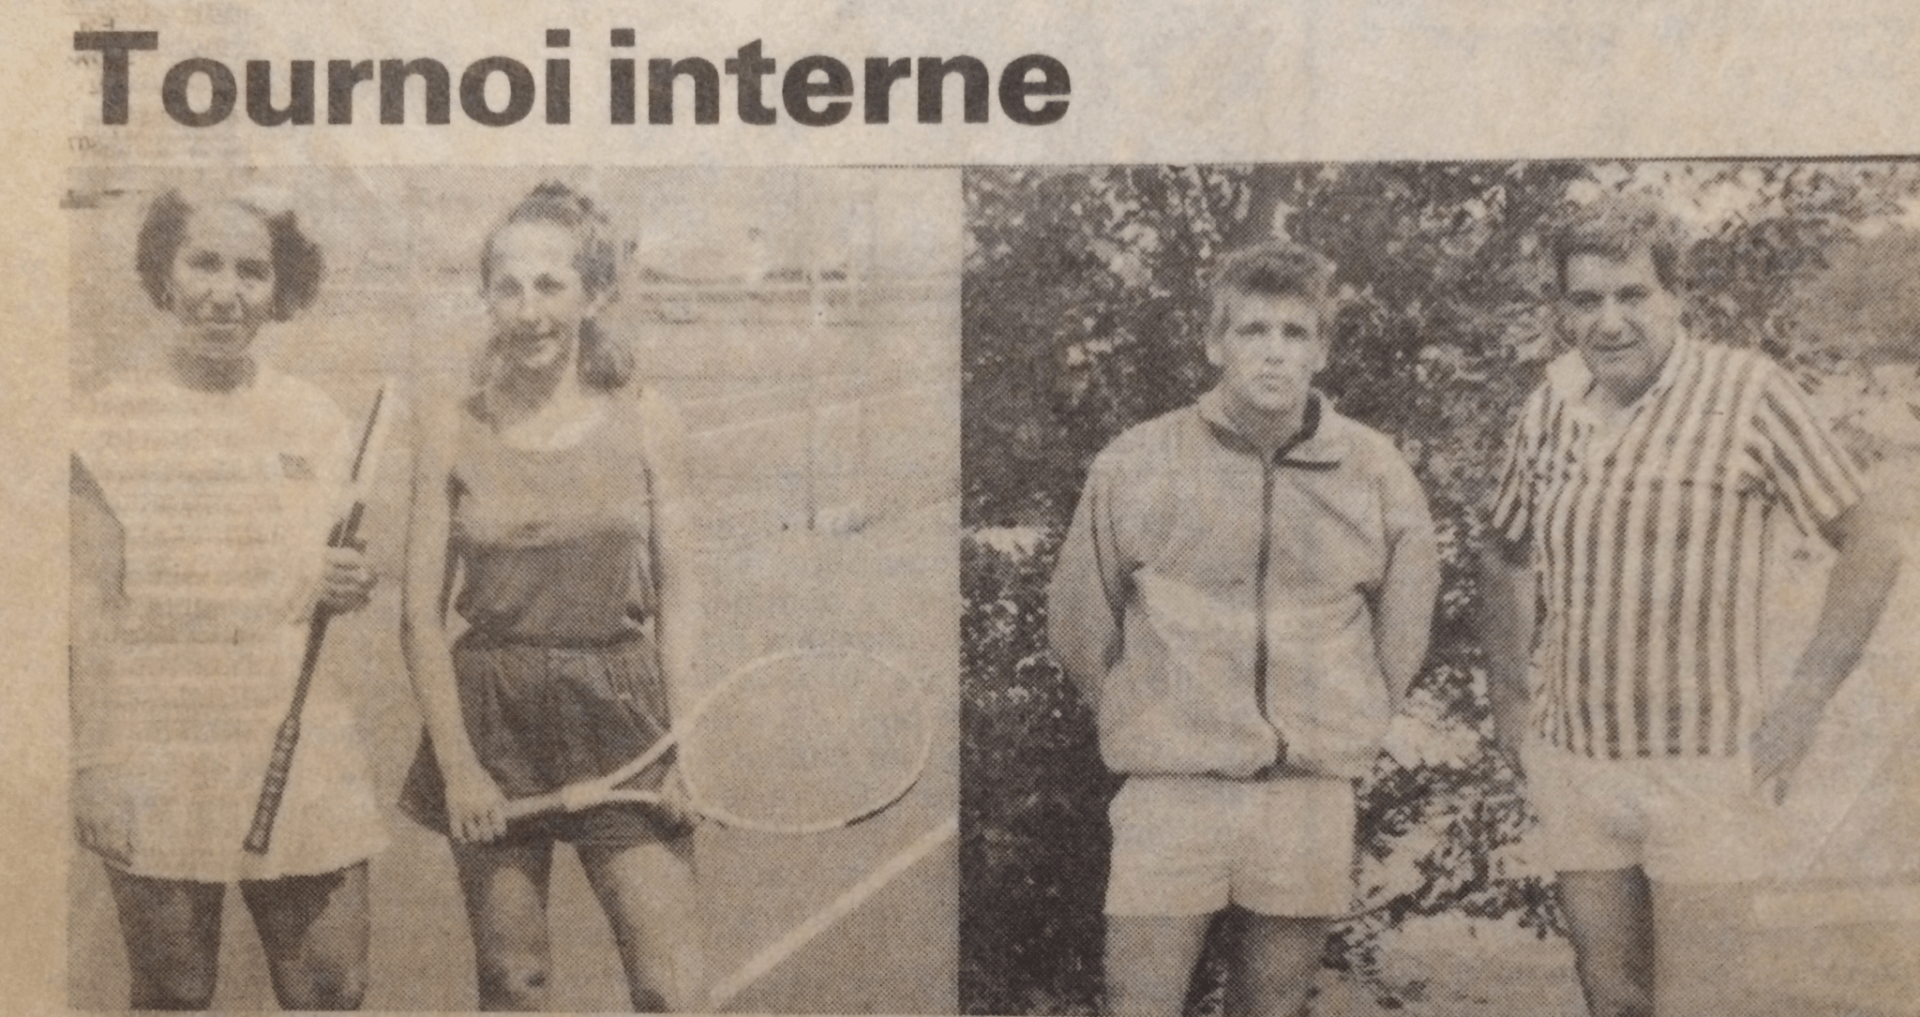 Tournoi interne 1986 - Tennis Club de Pierre Bénite